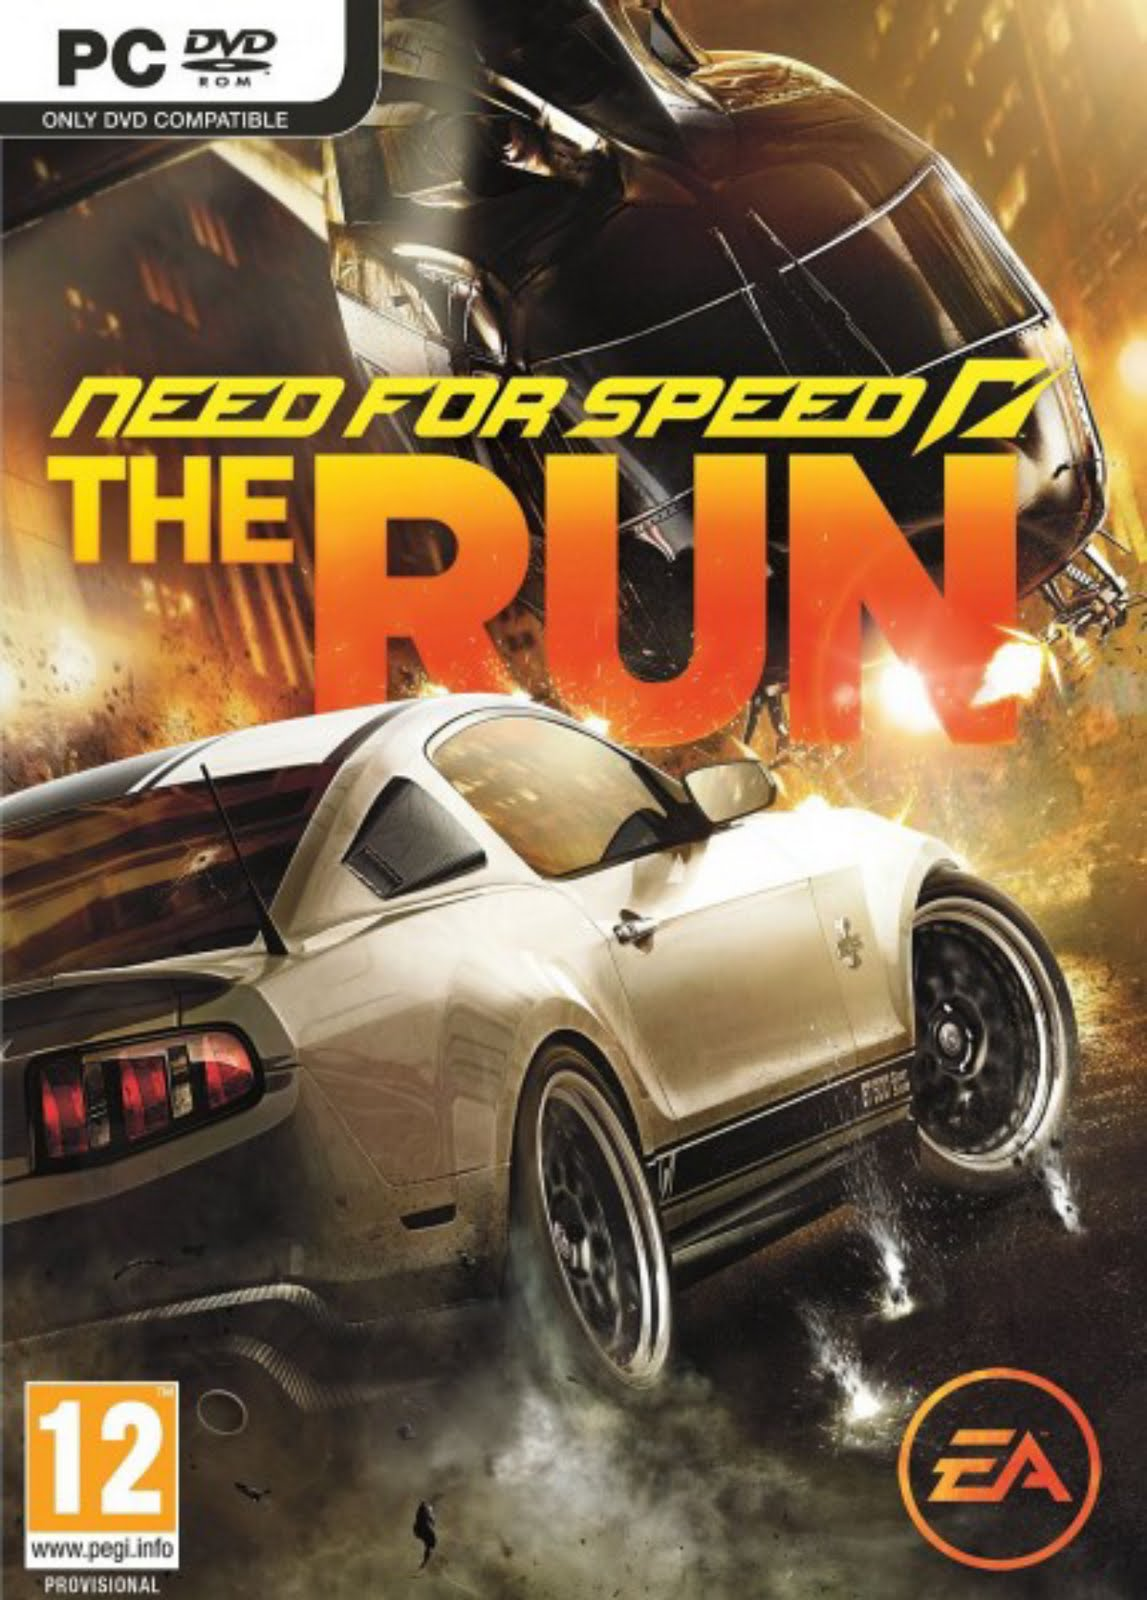 Need For Speed: The Run + Discounts + GIFT